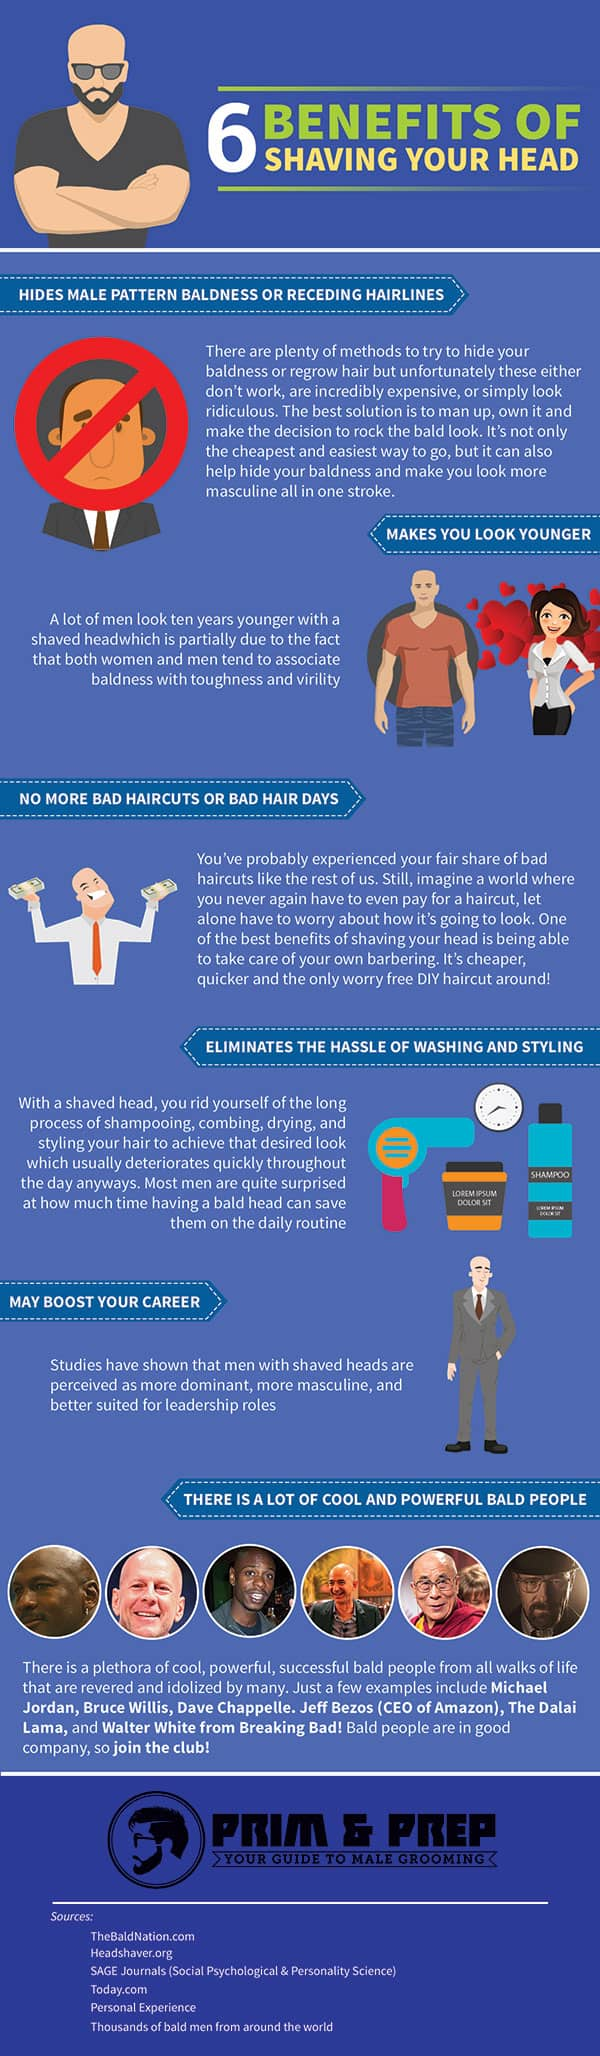 Benefits of Shaving Your Head (Infographic)